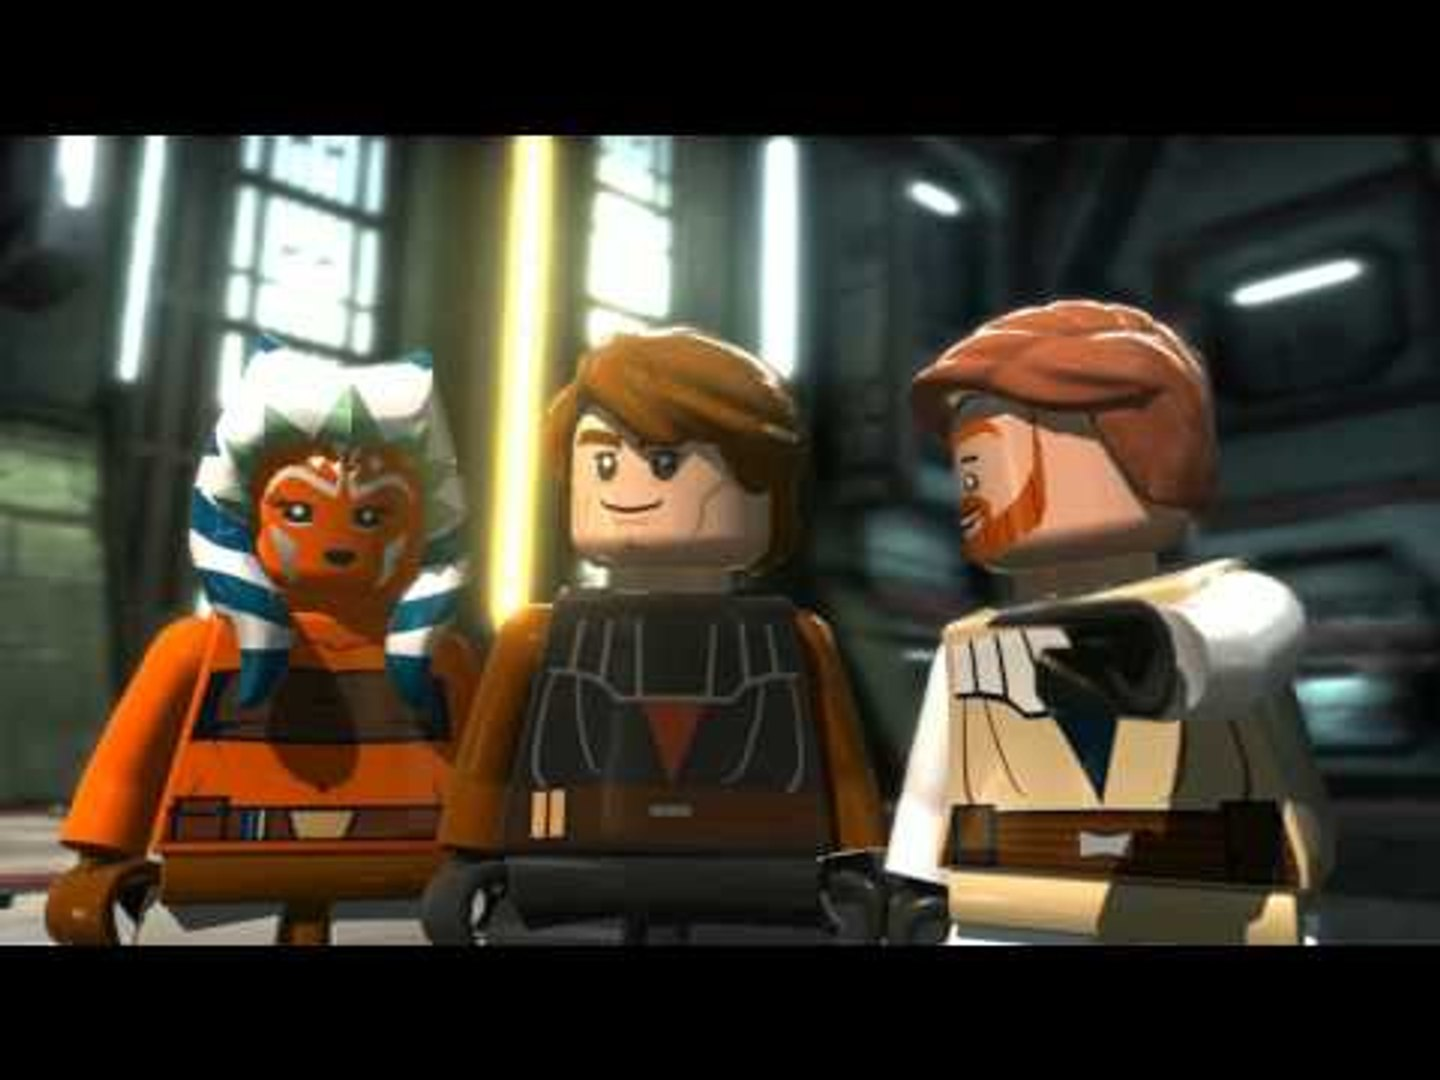 #LEGO Star Wars 3 The Clone Wars Part 11 - Storm Over Ryloth